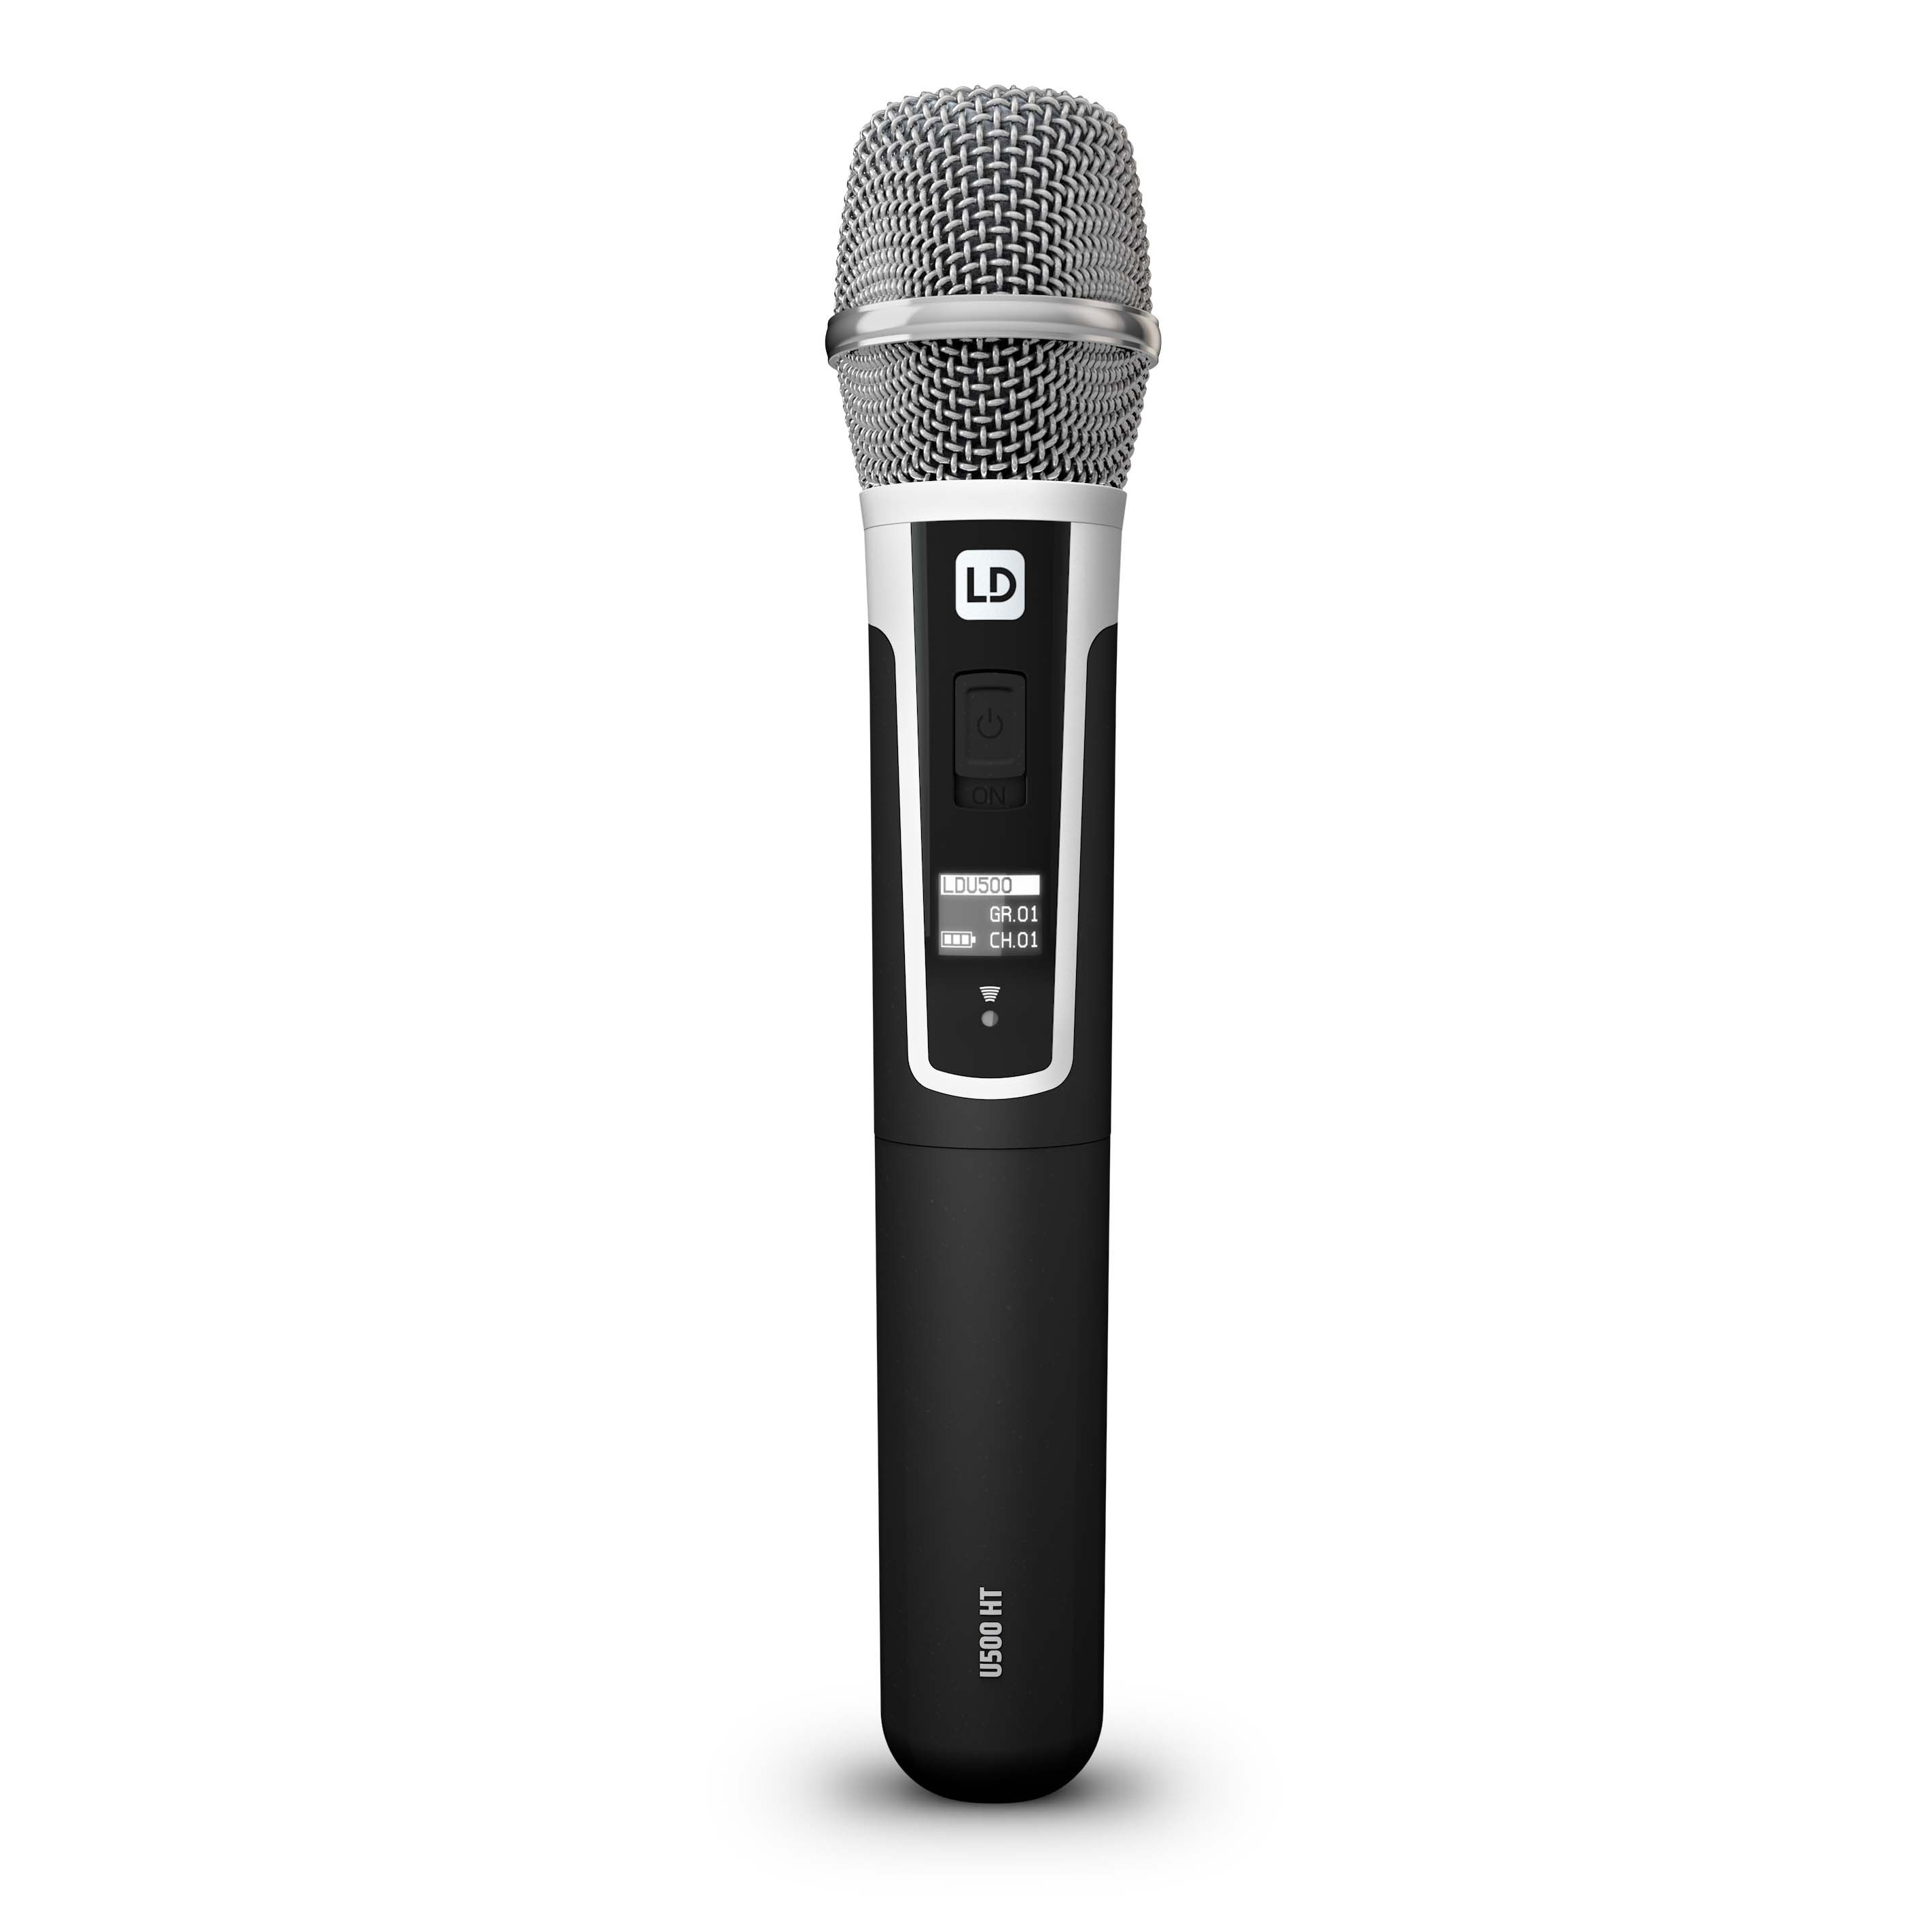 U505 HHC Wireless Microphone System with Condenser Handheld Microphone